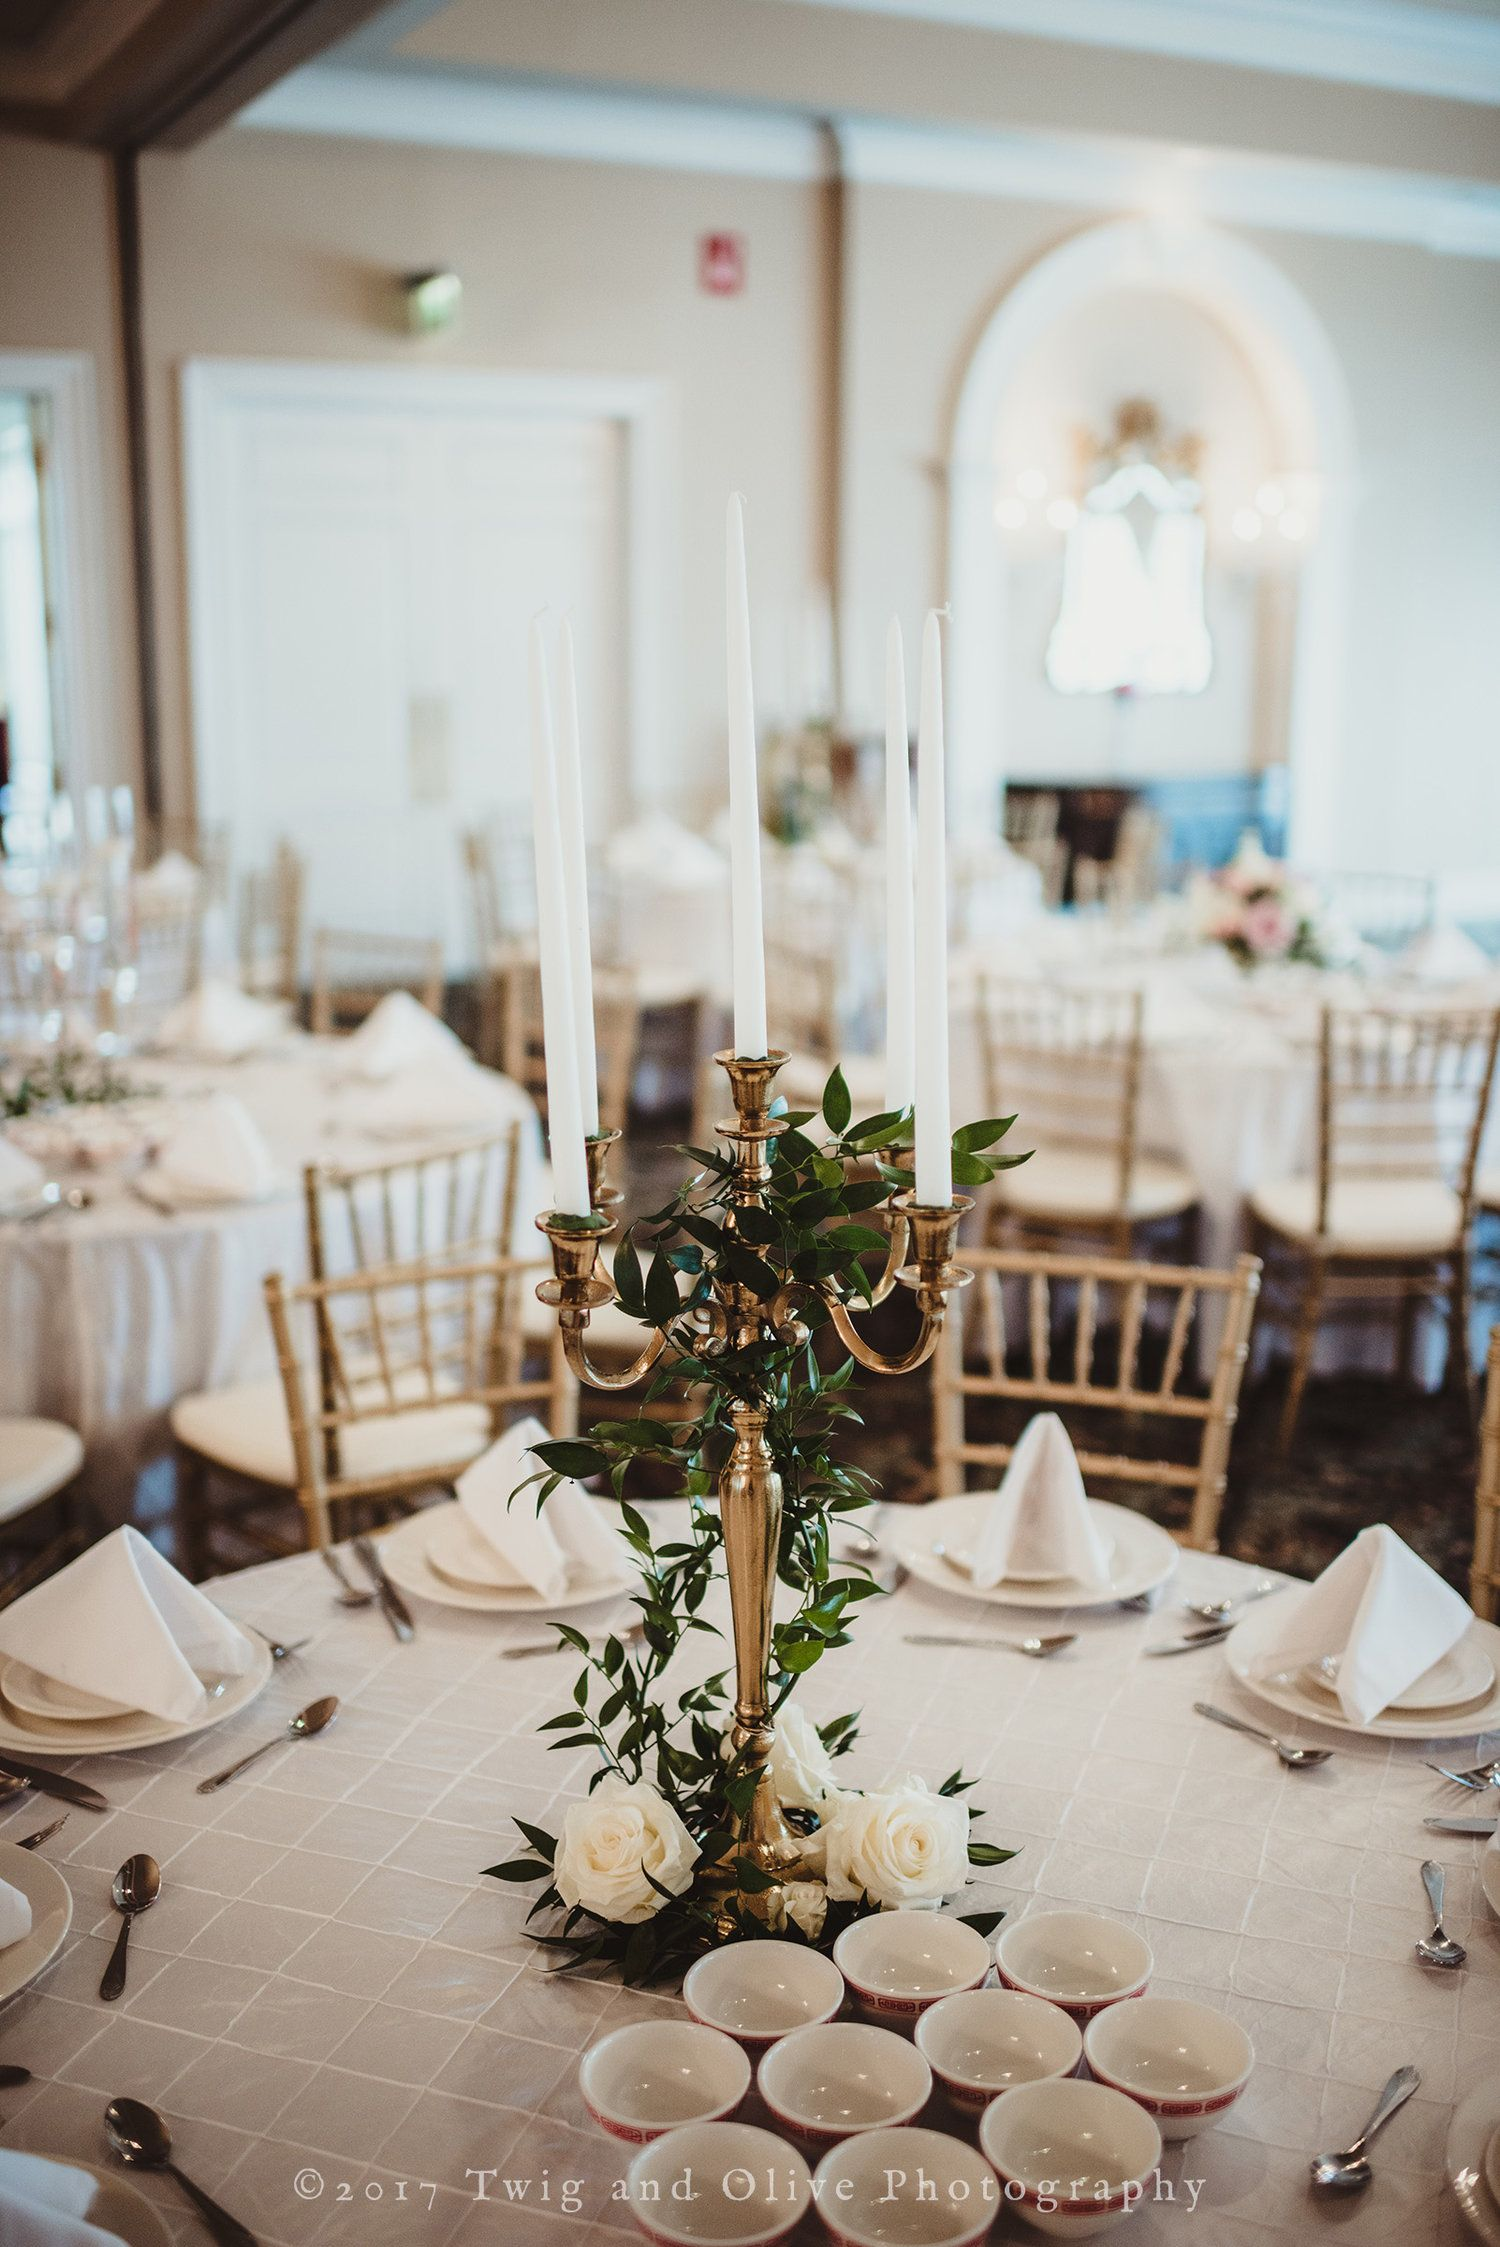 A Wedding Reception Table With Gold Candelabras Covered In Italian